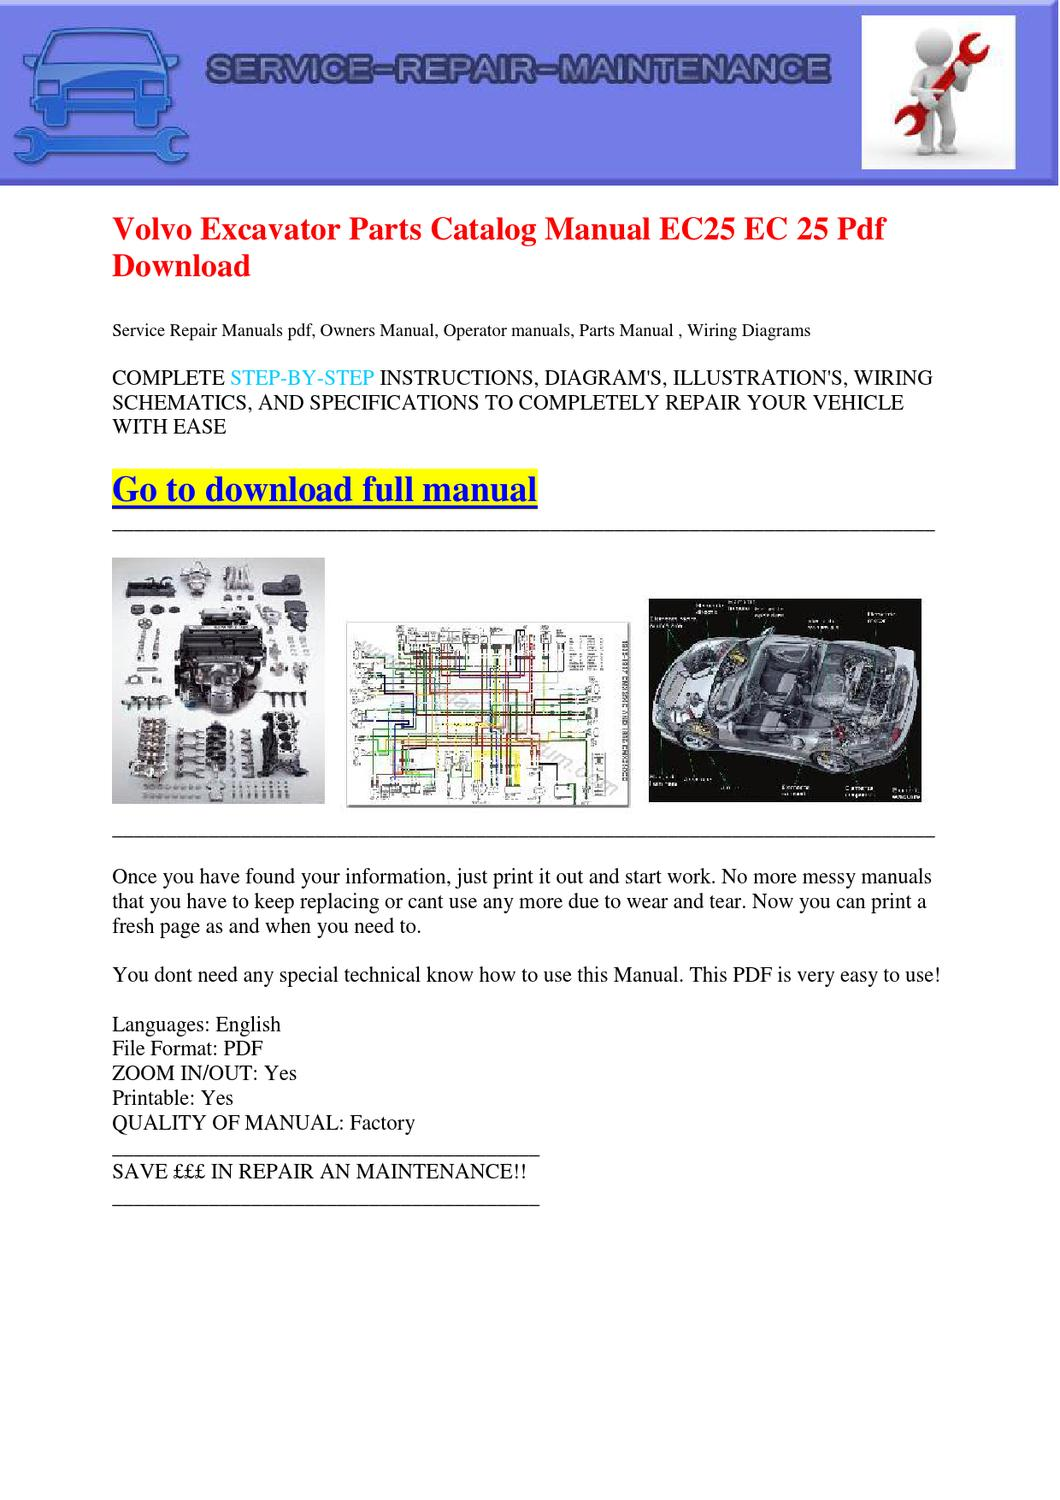 Volvo Excavator Parts Catalog Manual Ec25 Ec 25 Pdf